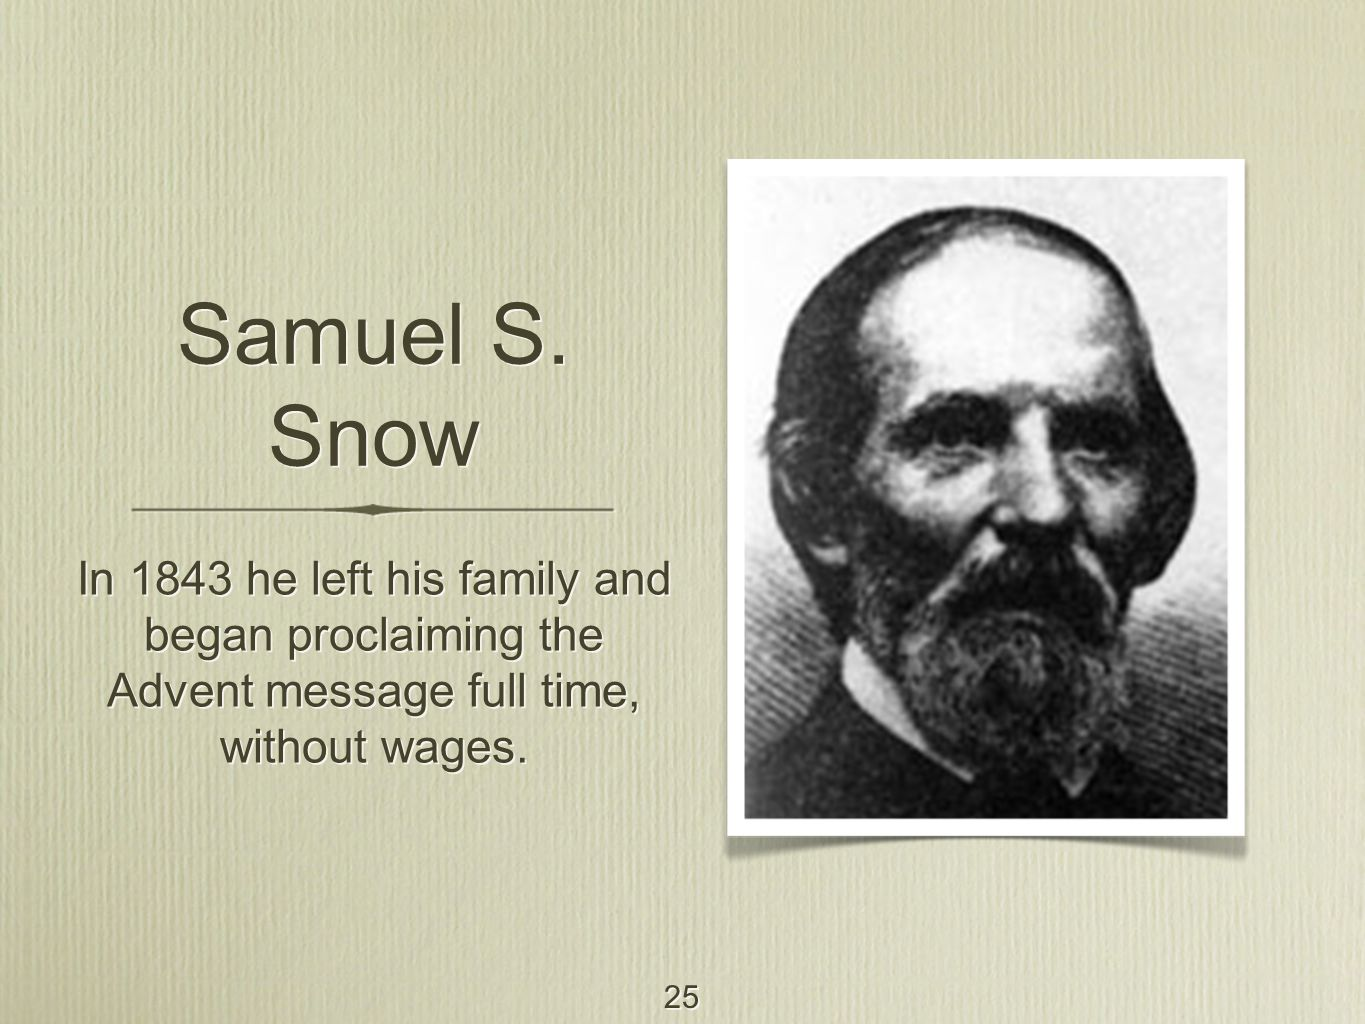 25 Samuel S. Snow In 1843 he left his family and began proclaiming the Advent message full time, without wages.